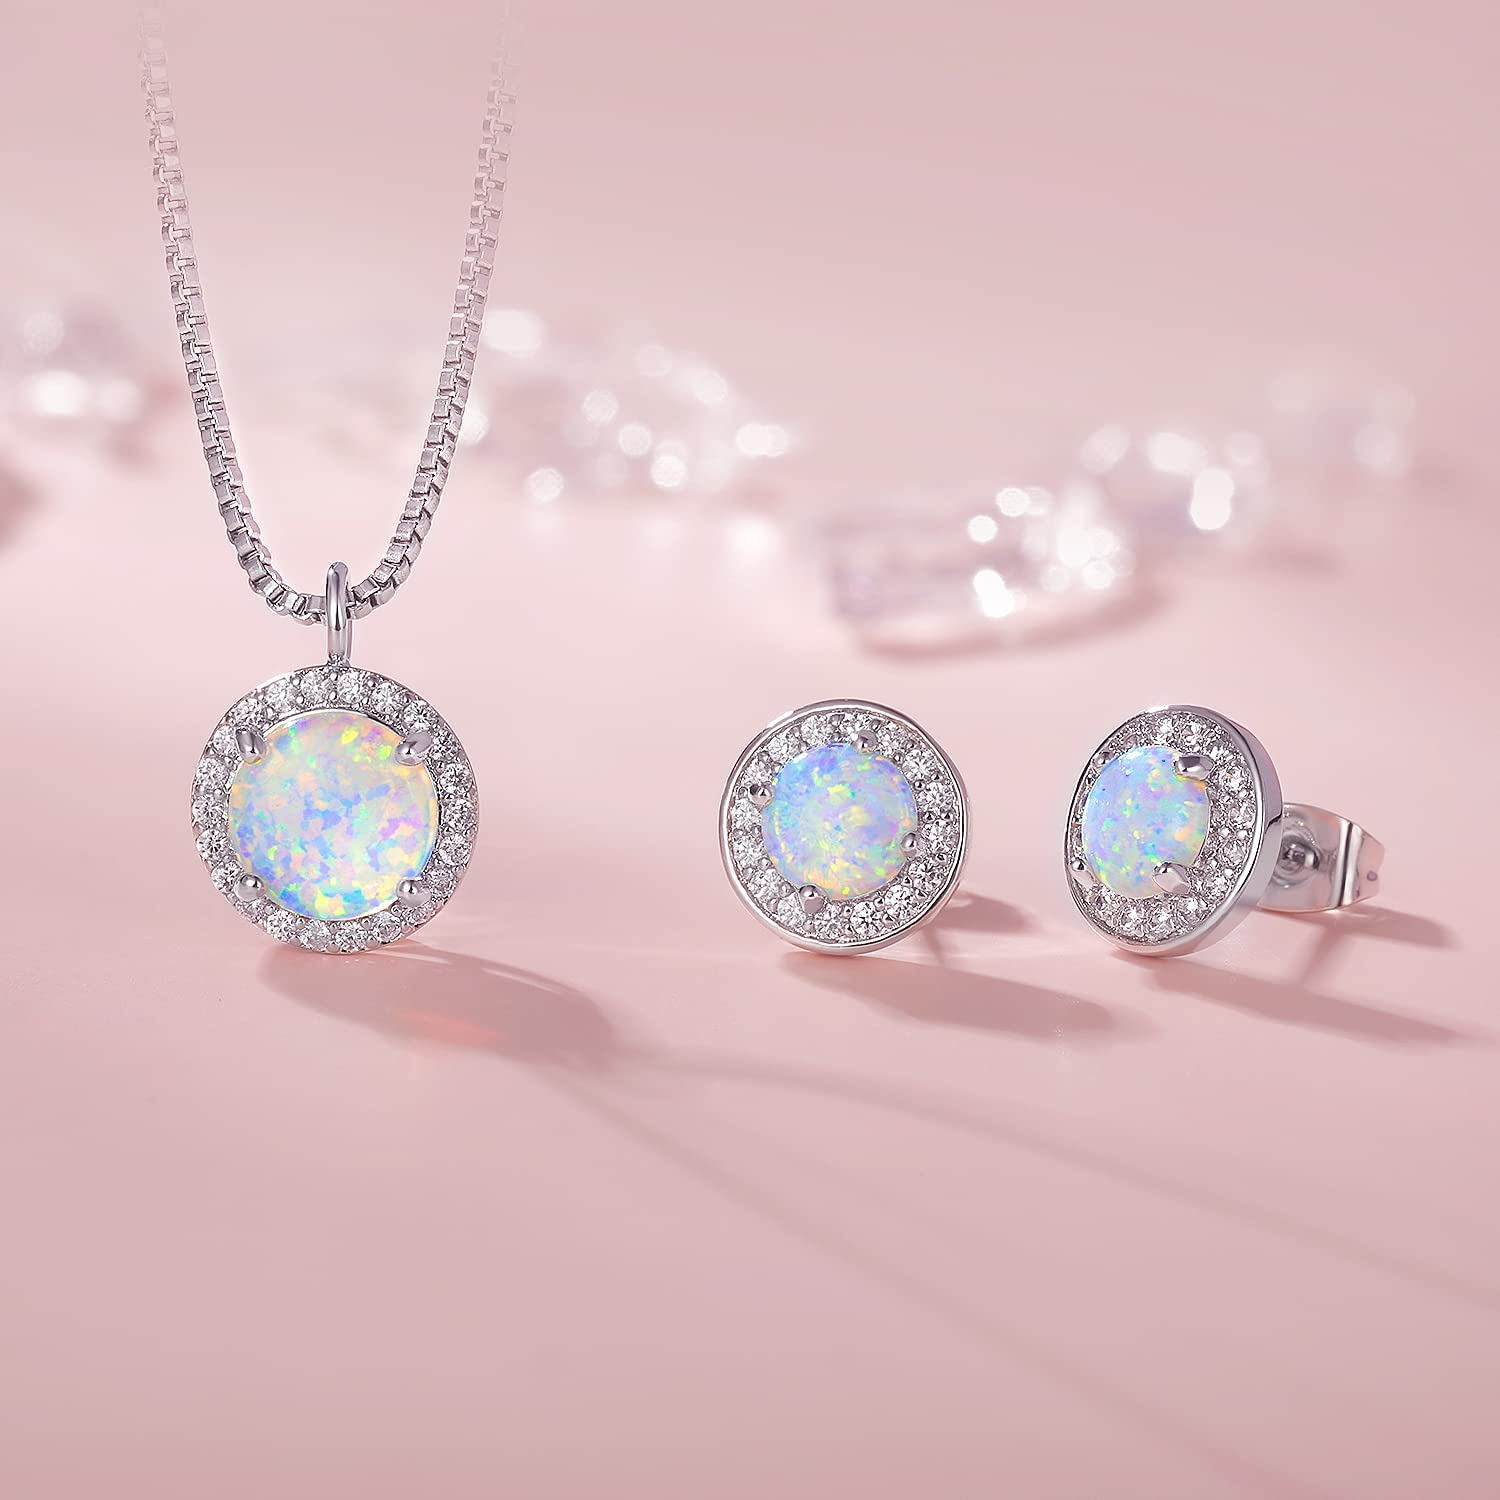 White Gold Opal Jewelry with Cubic Zirconia,Opal Necklace and Earring Set for Women and Girl(necklace and stud earring)